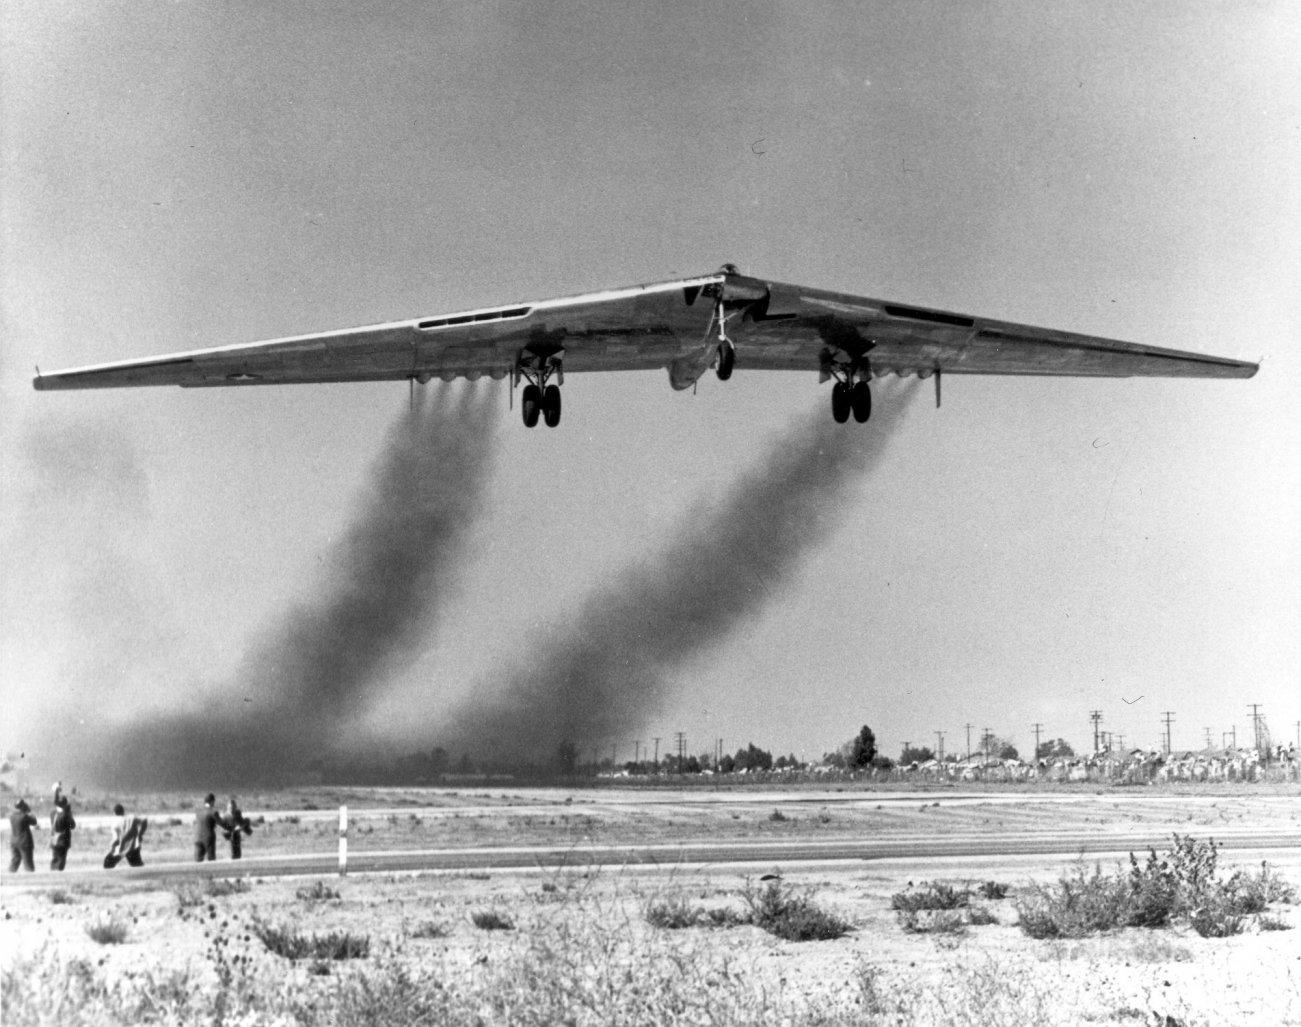 Hitler Planned to Use a Flying Wing Bomber (Like This) To Attack NYC